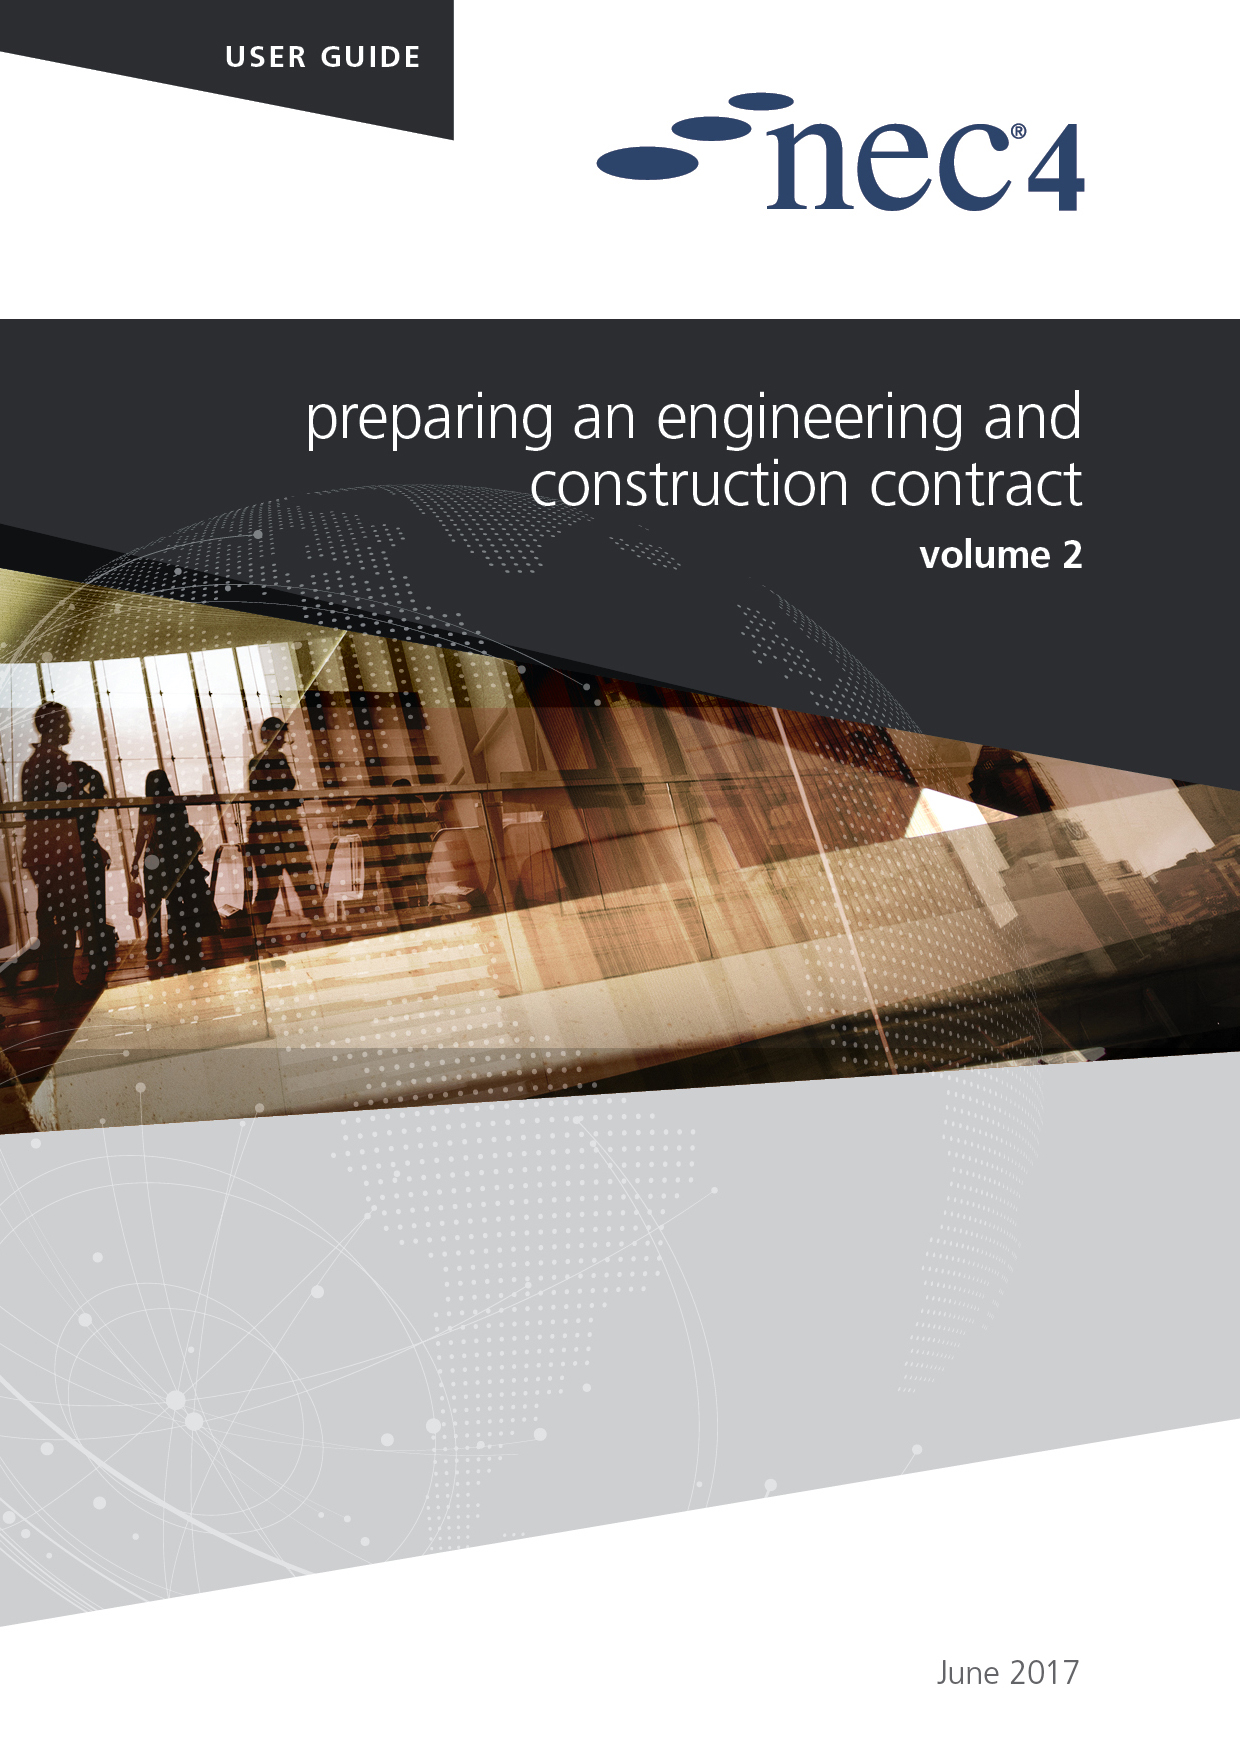 NEC4: Preparing an Engineering and Construction Contract